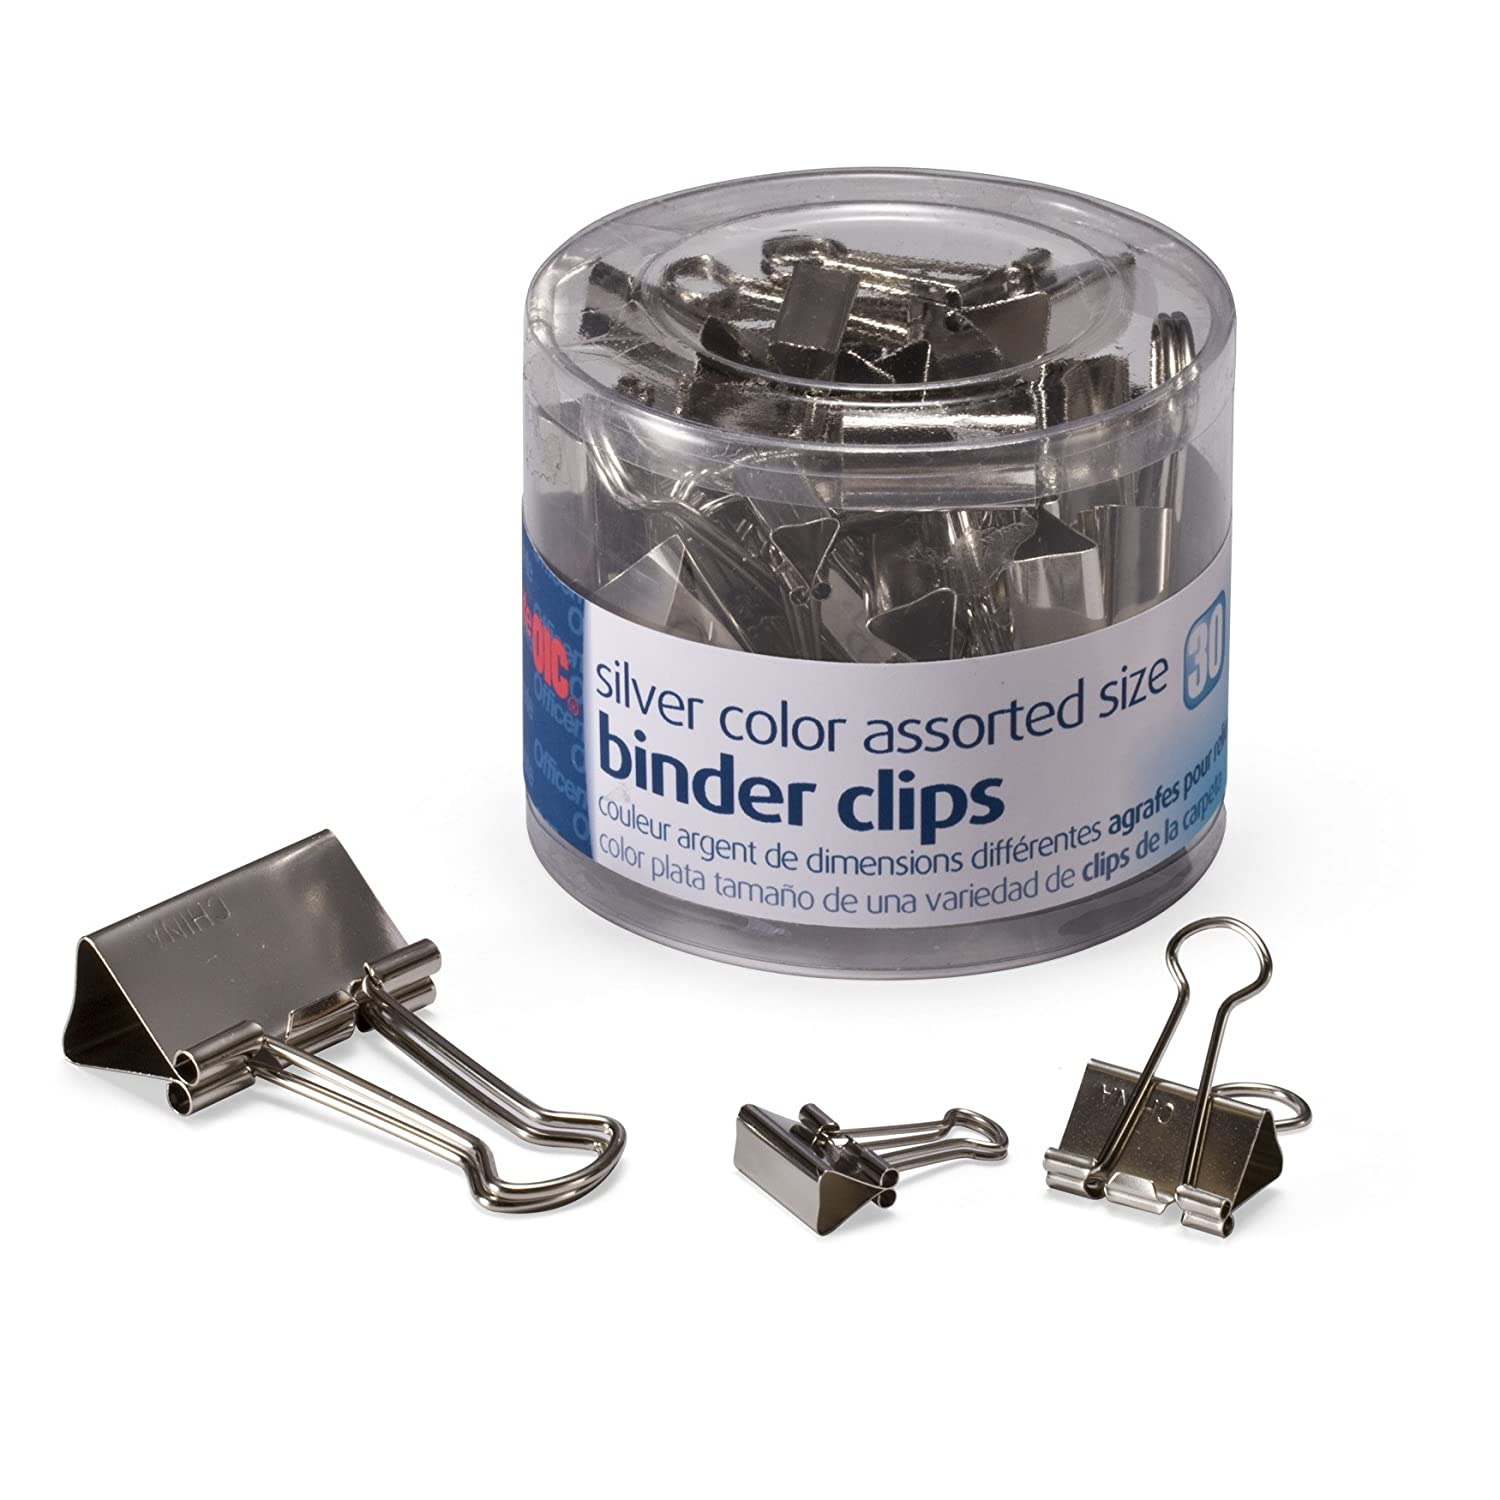 30ct Binder Clips on Sale for.